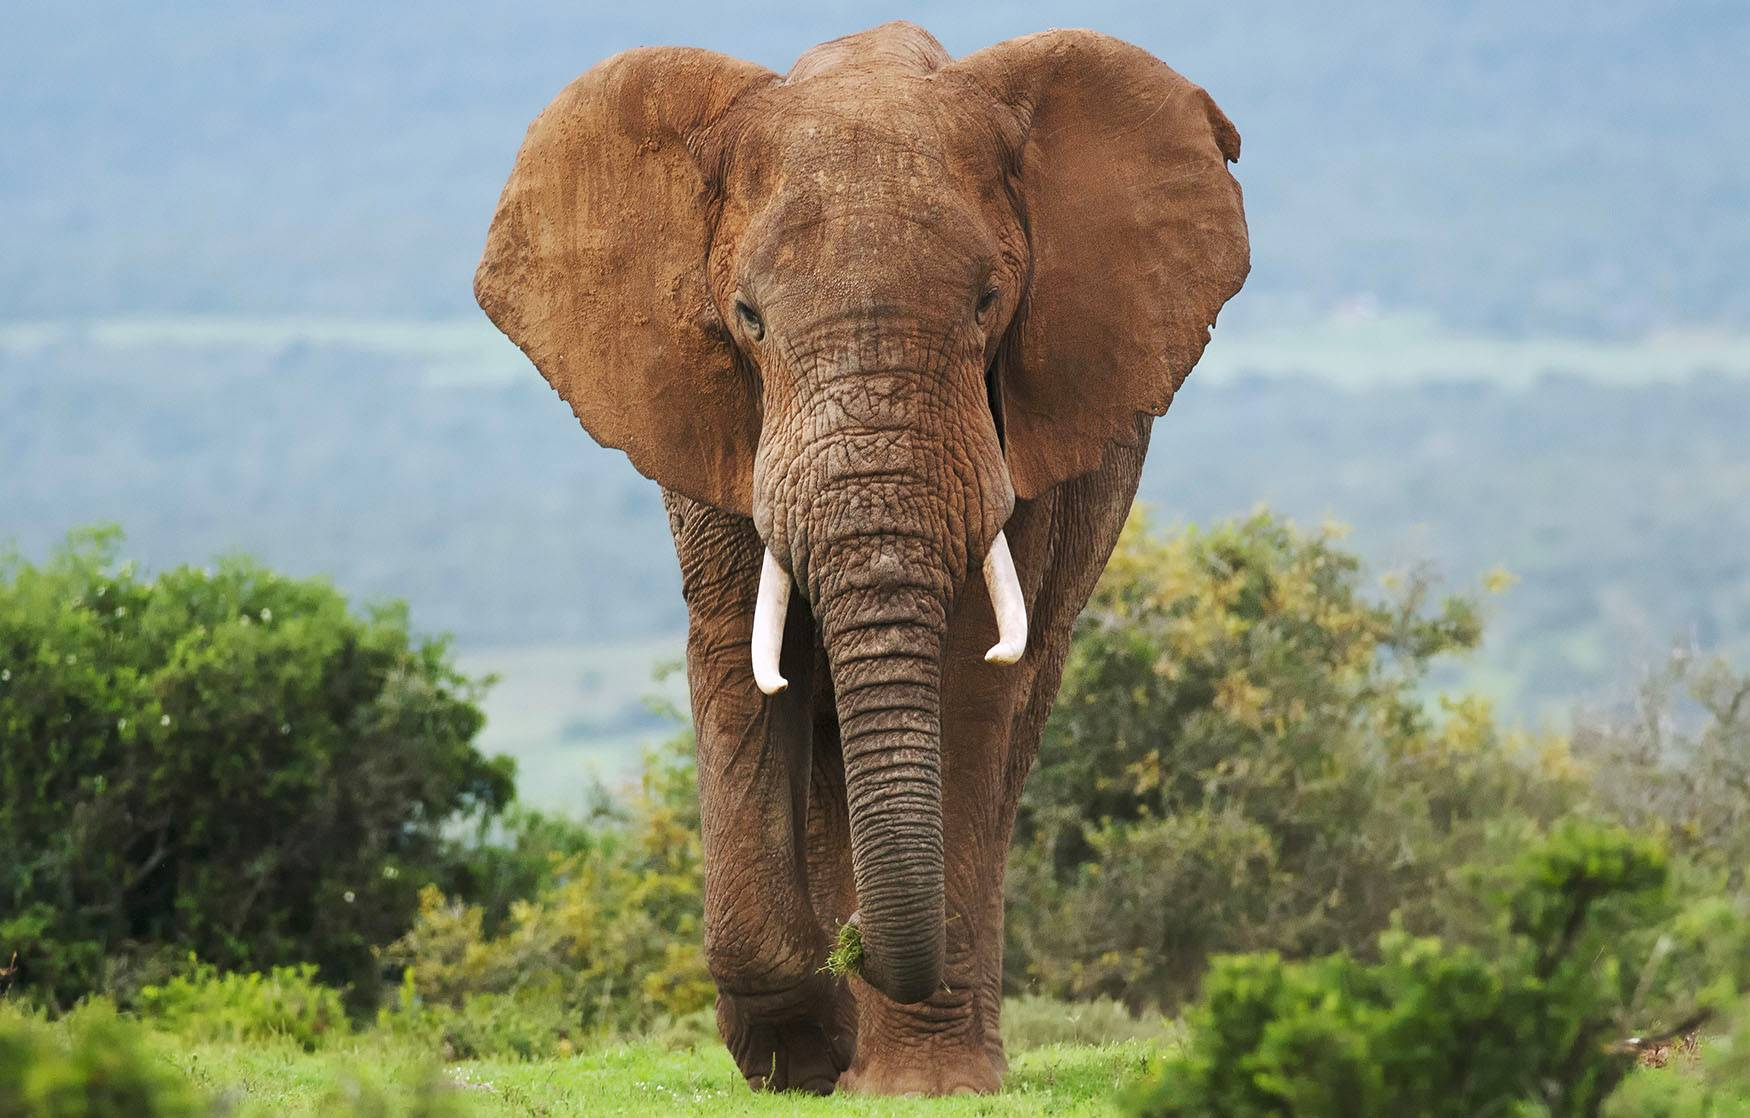 Unlawful elephant ivory is selling on eBay